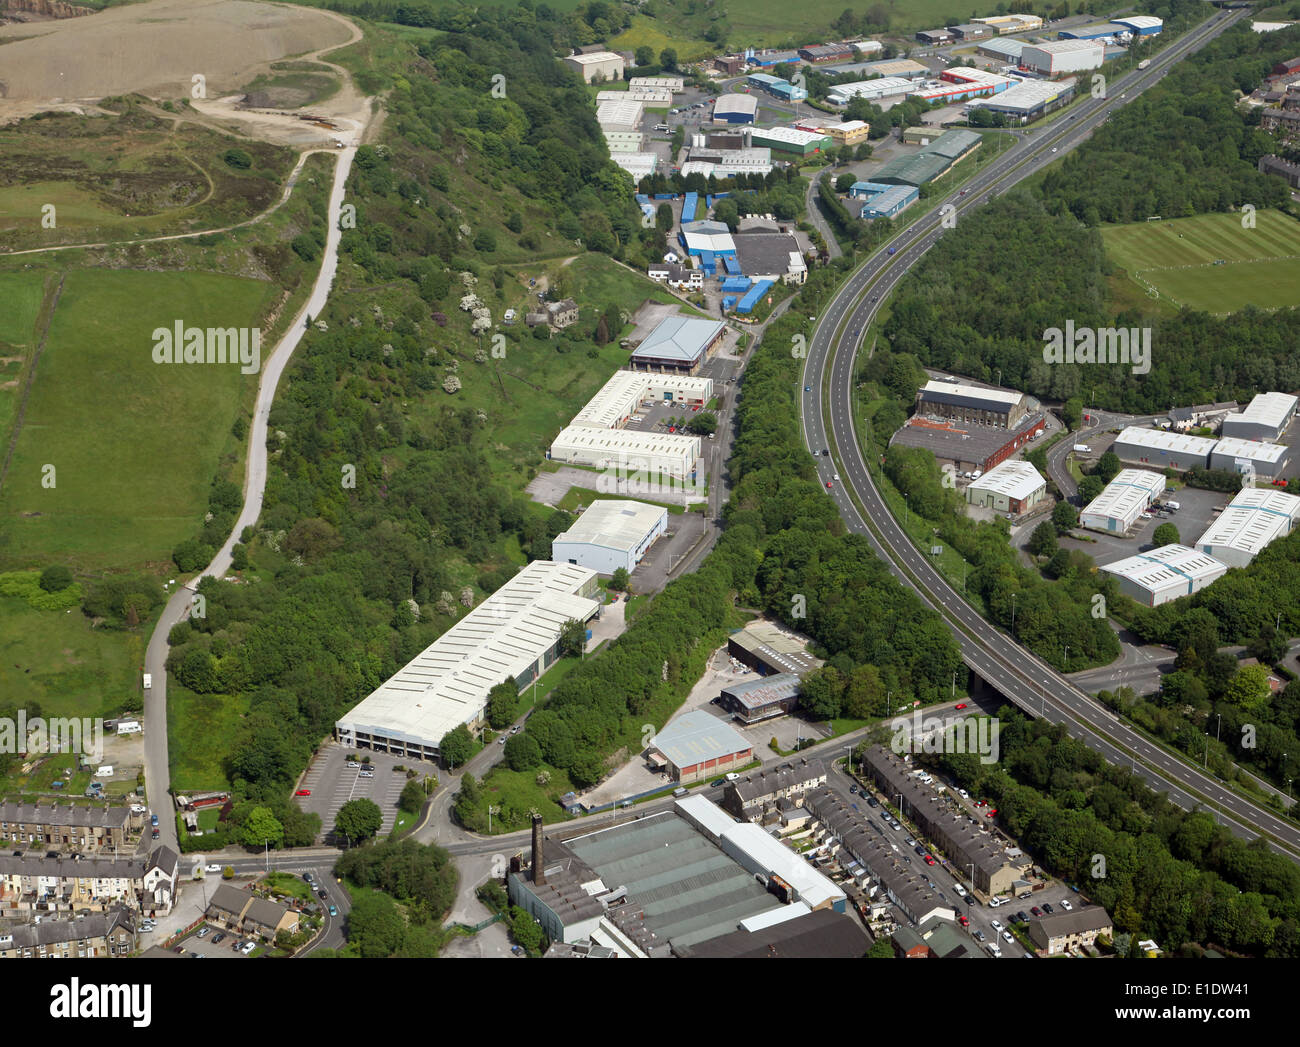 aerial view of an industrial estate on St Crispin Way, Haslingden, Lancashire - Stock Image